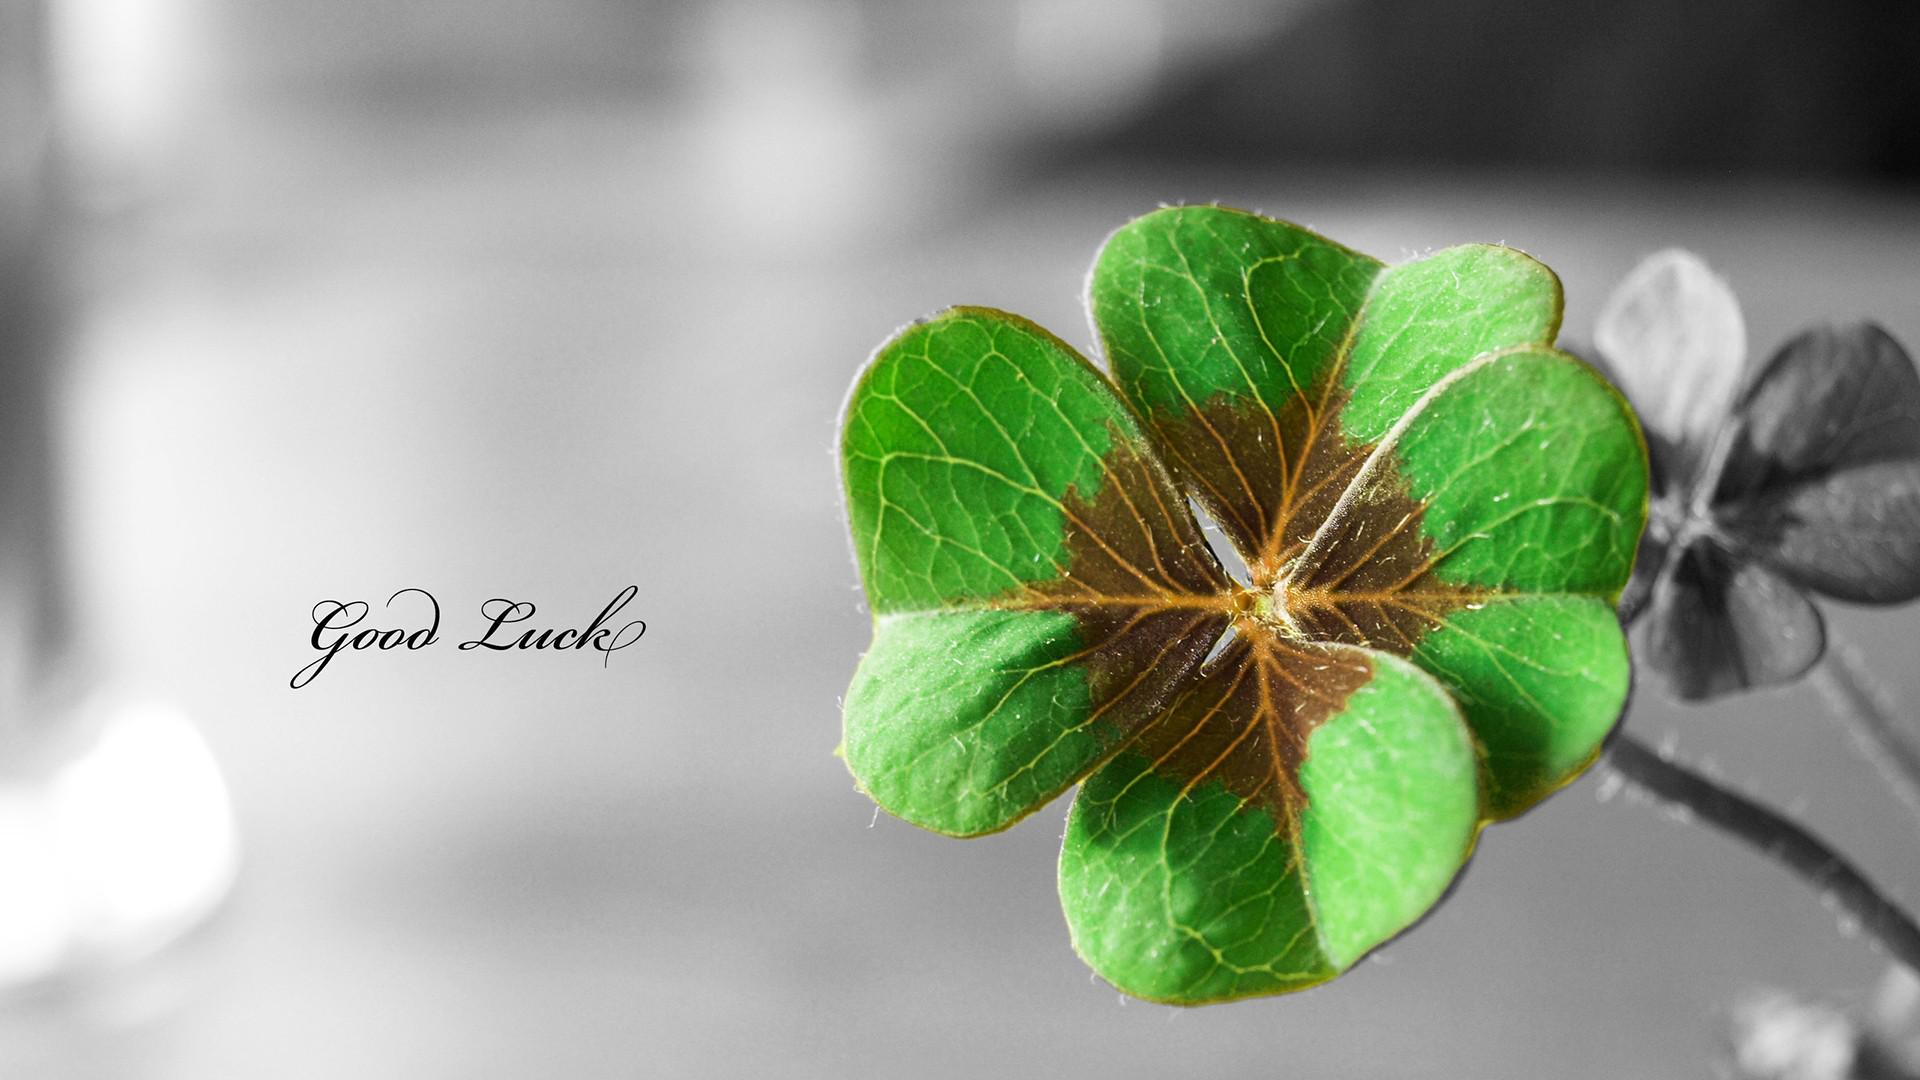 Good-Luck-1920x1080-wallpaper-wpc9005586